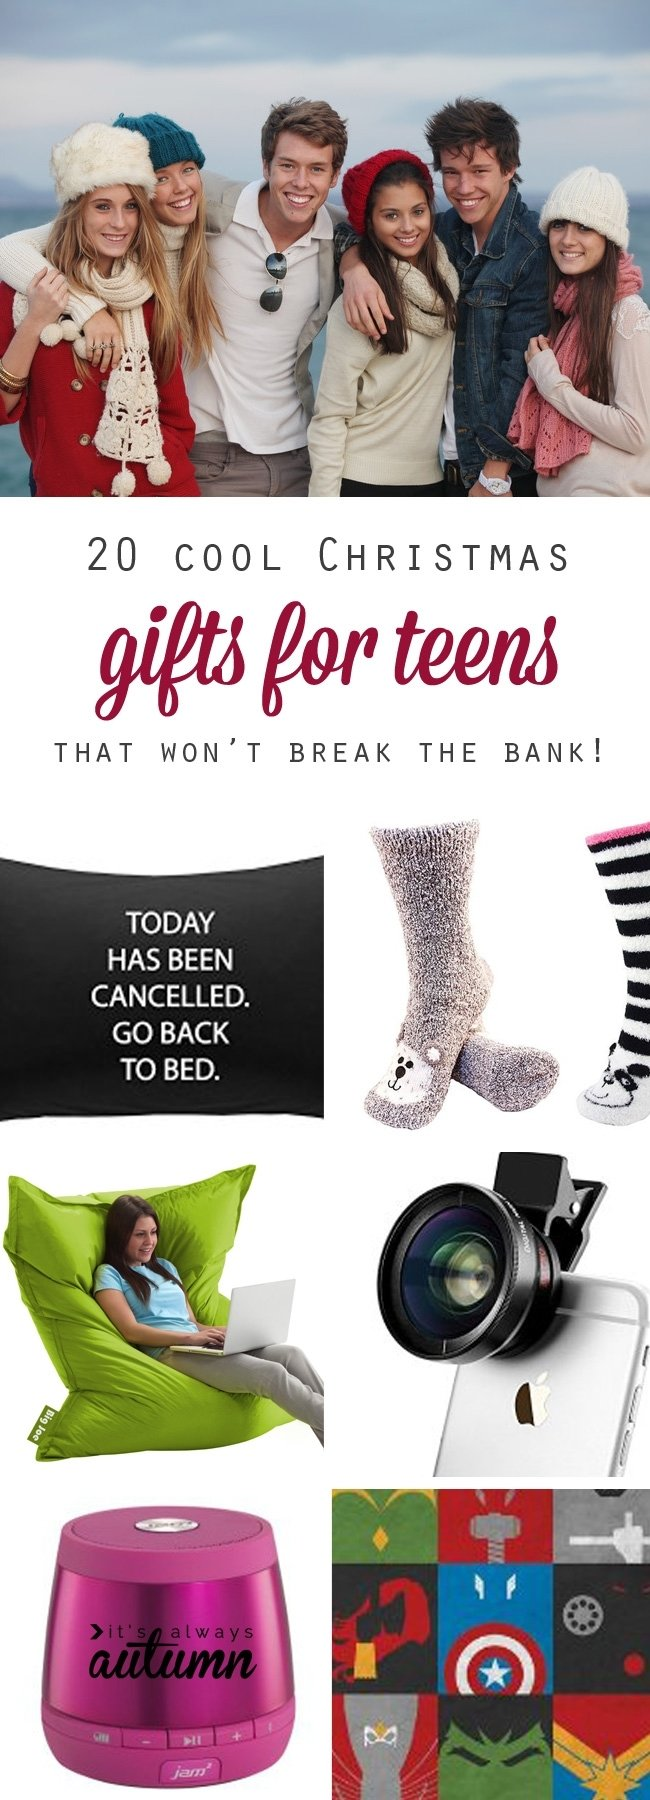 10 Elegant Birthday Gift Ideas For A Teenage Girl best christmas gift ideas for teens its always autumn 1 2020